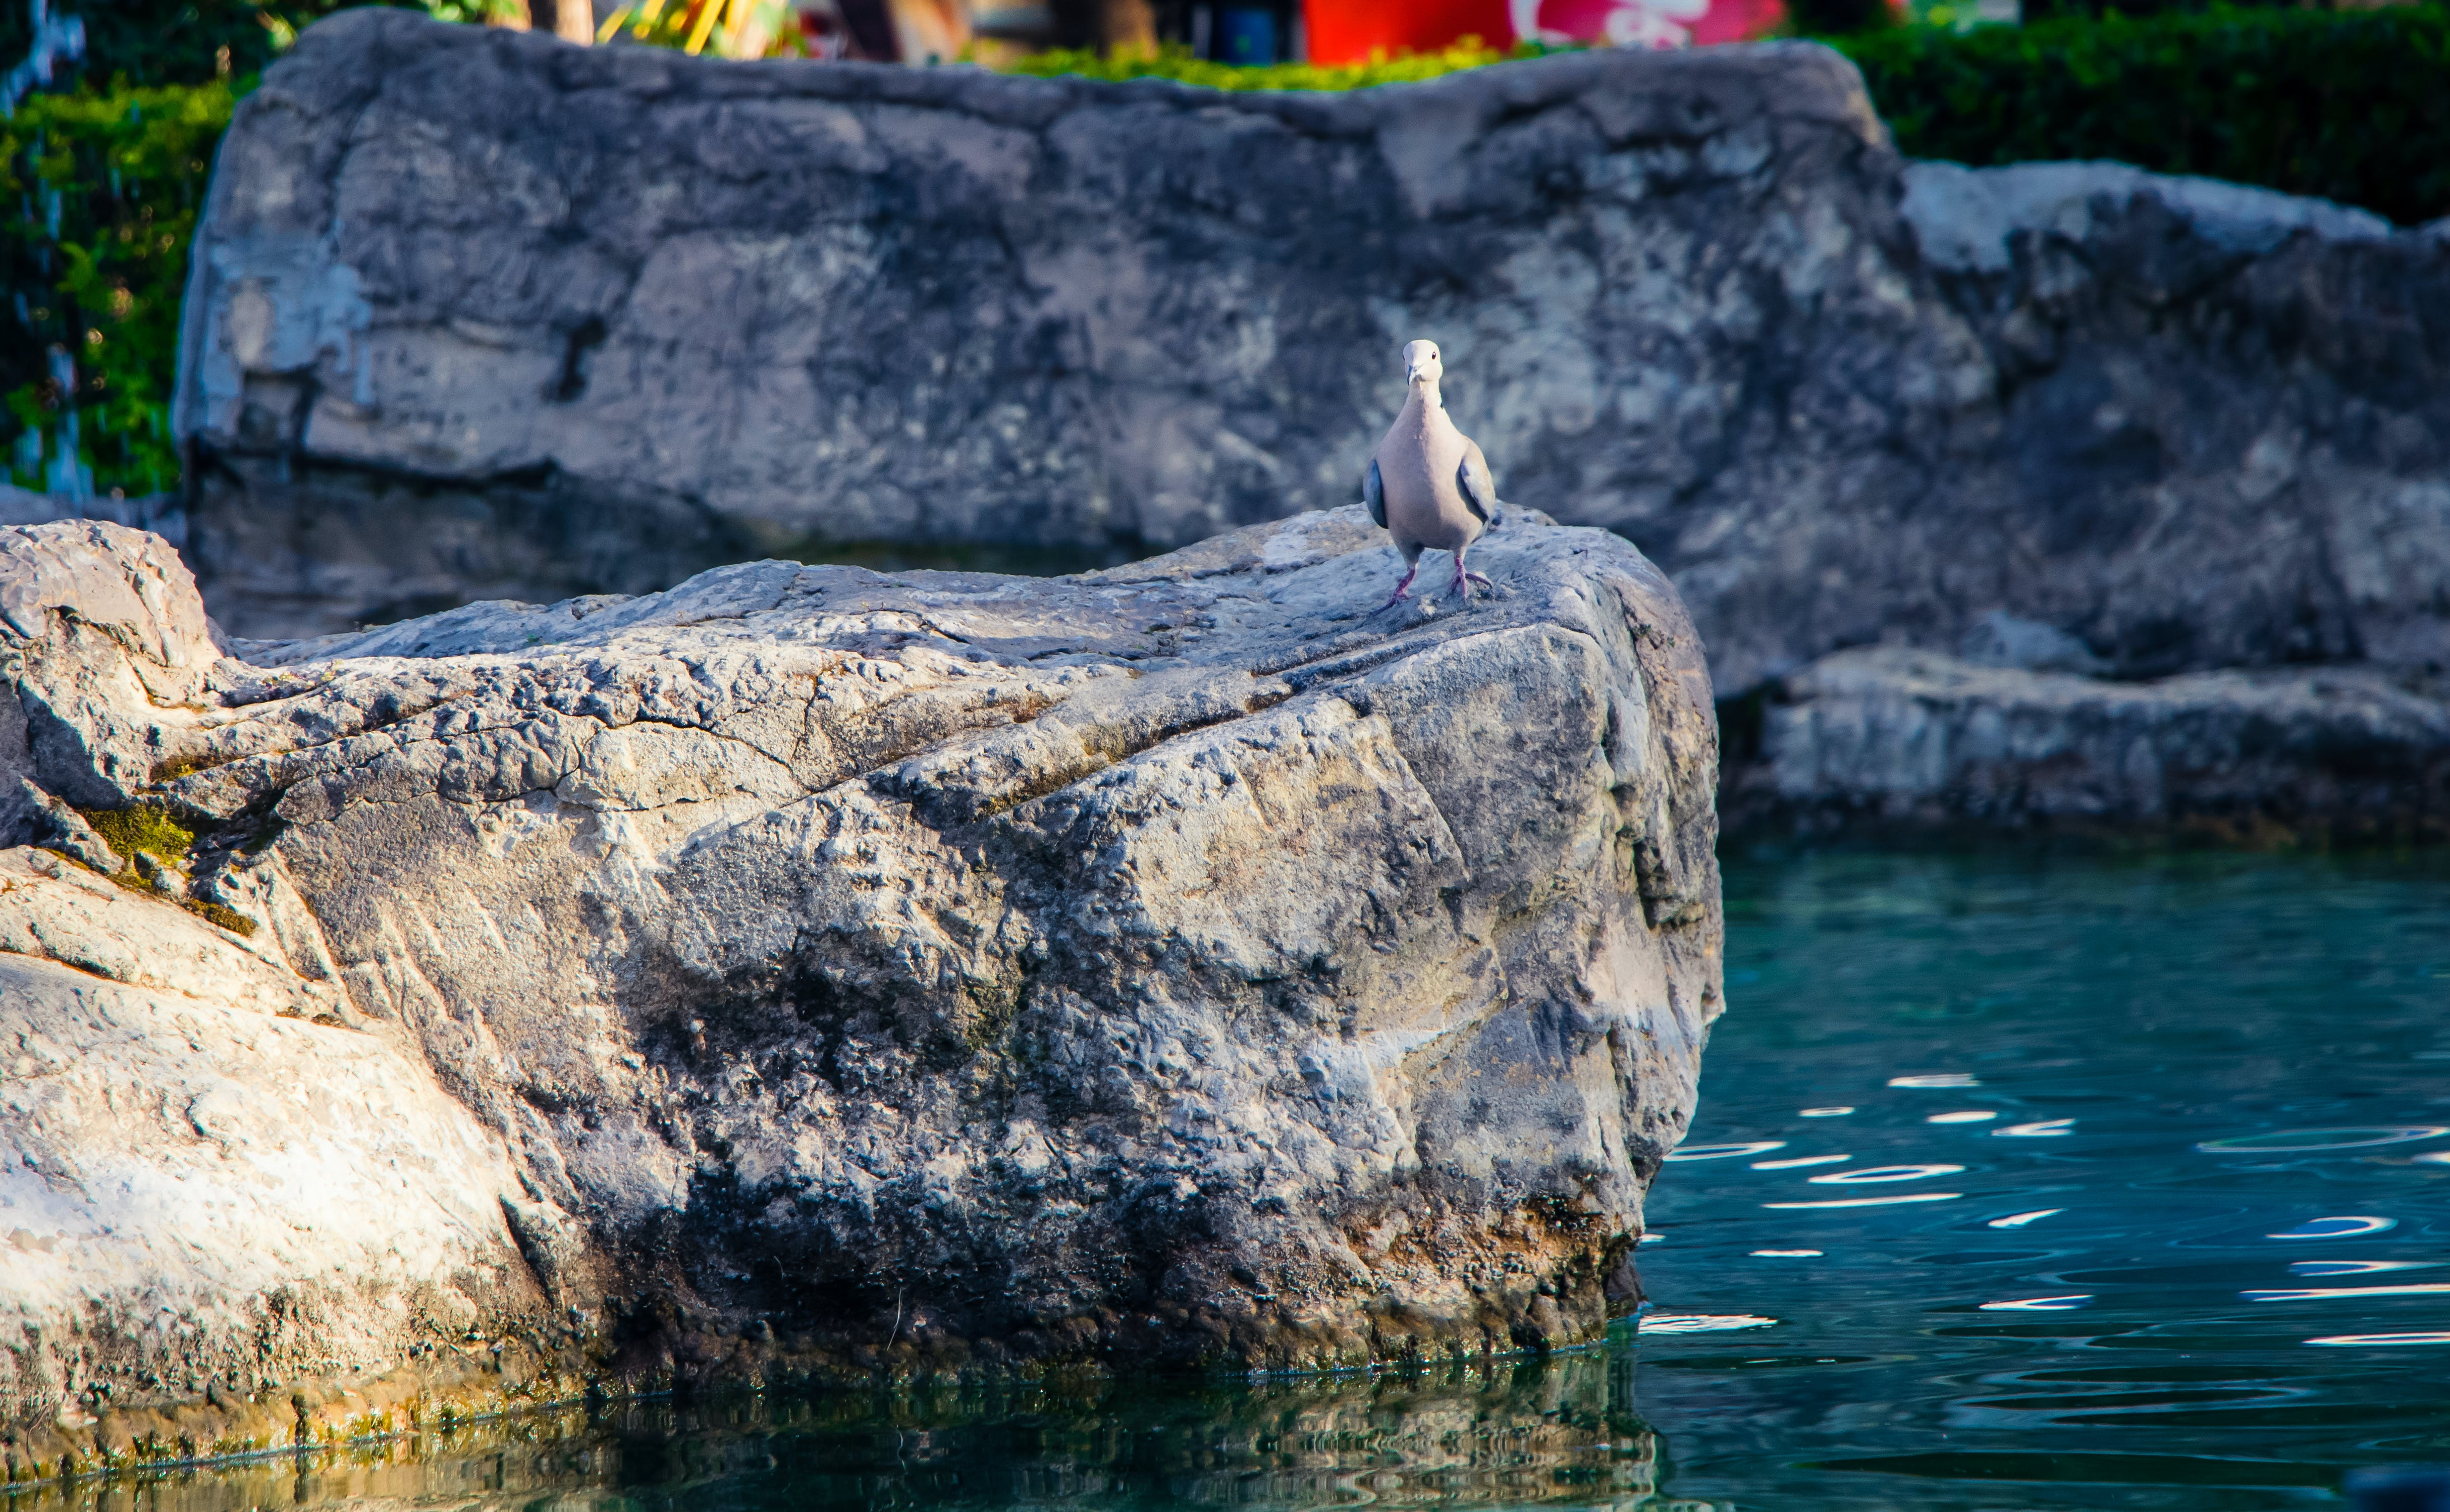 Photo of Gray Bird Perch on Gray Stone Beside Body of Water